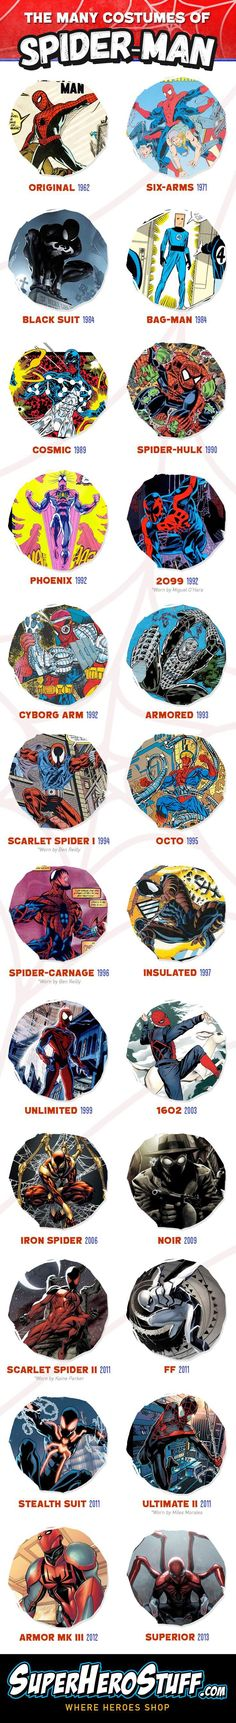 It's been over half a century since Spiderman made his debut. Check out this infographic showing all his suits throughout the years.